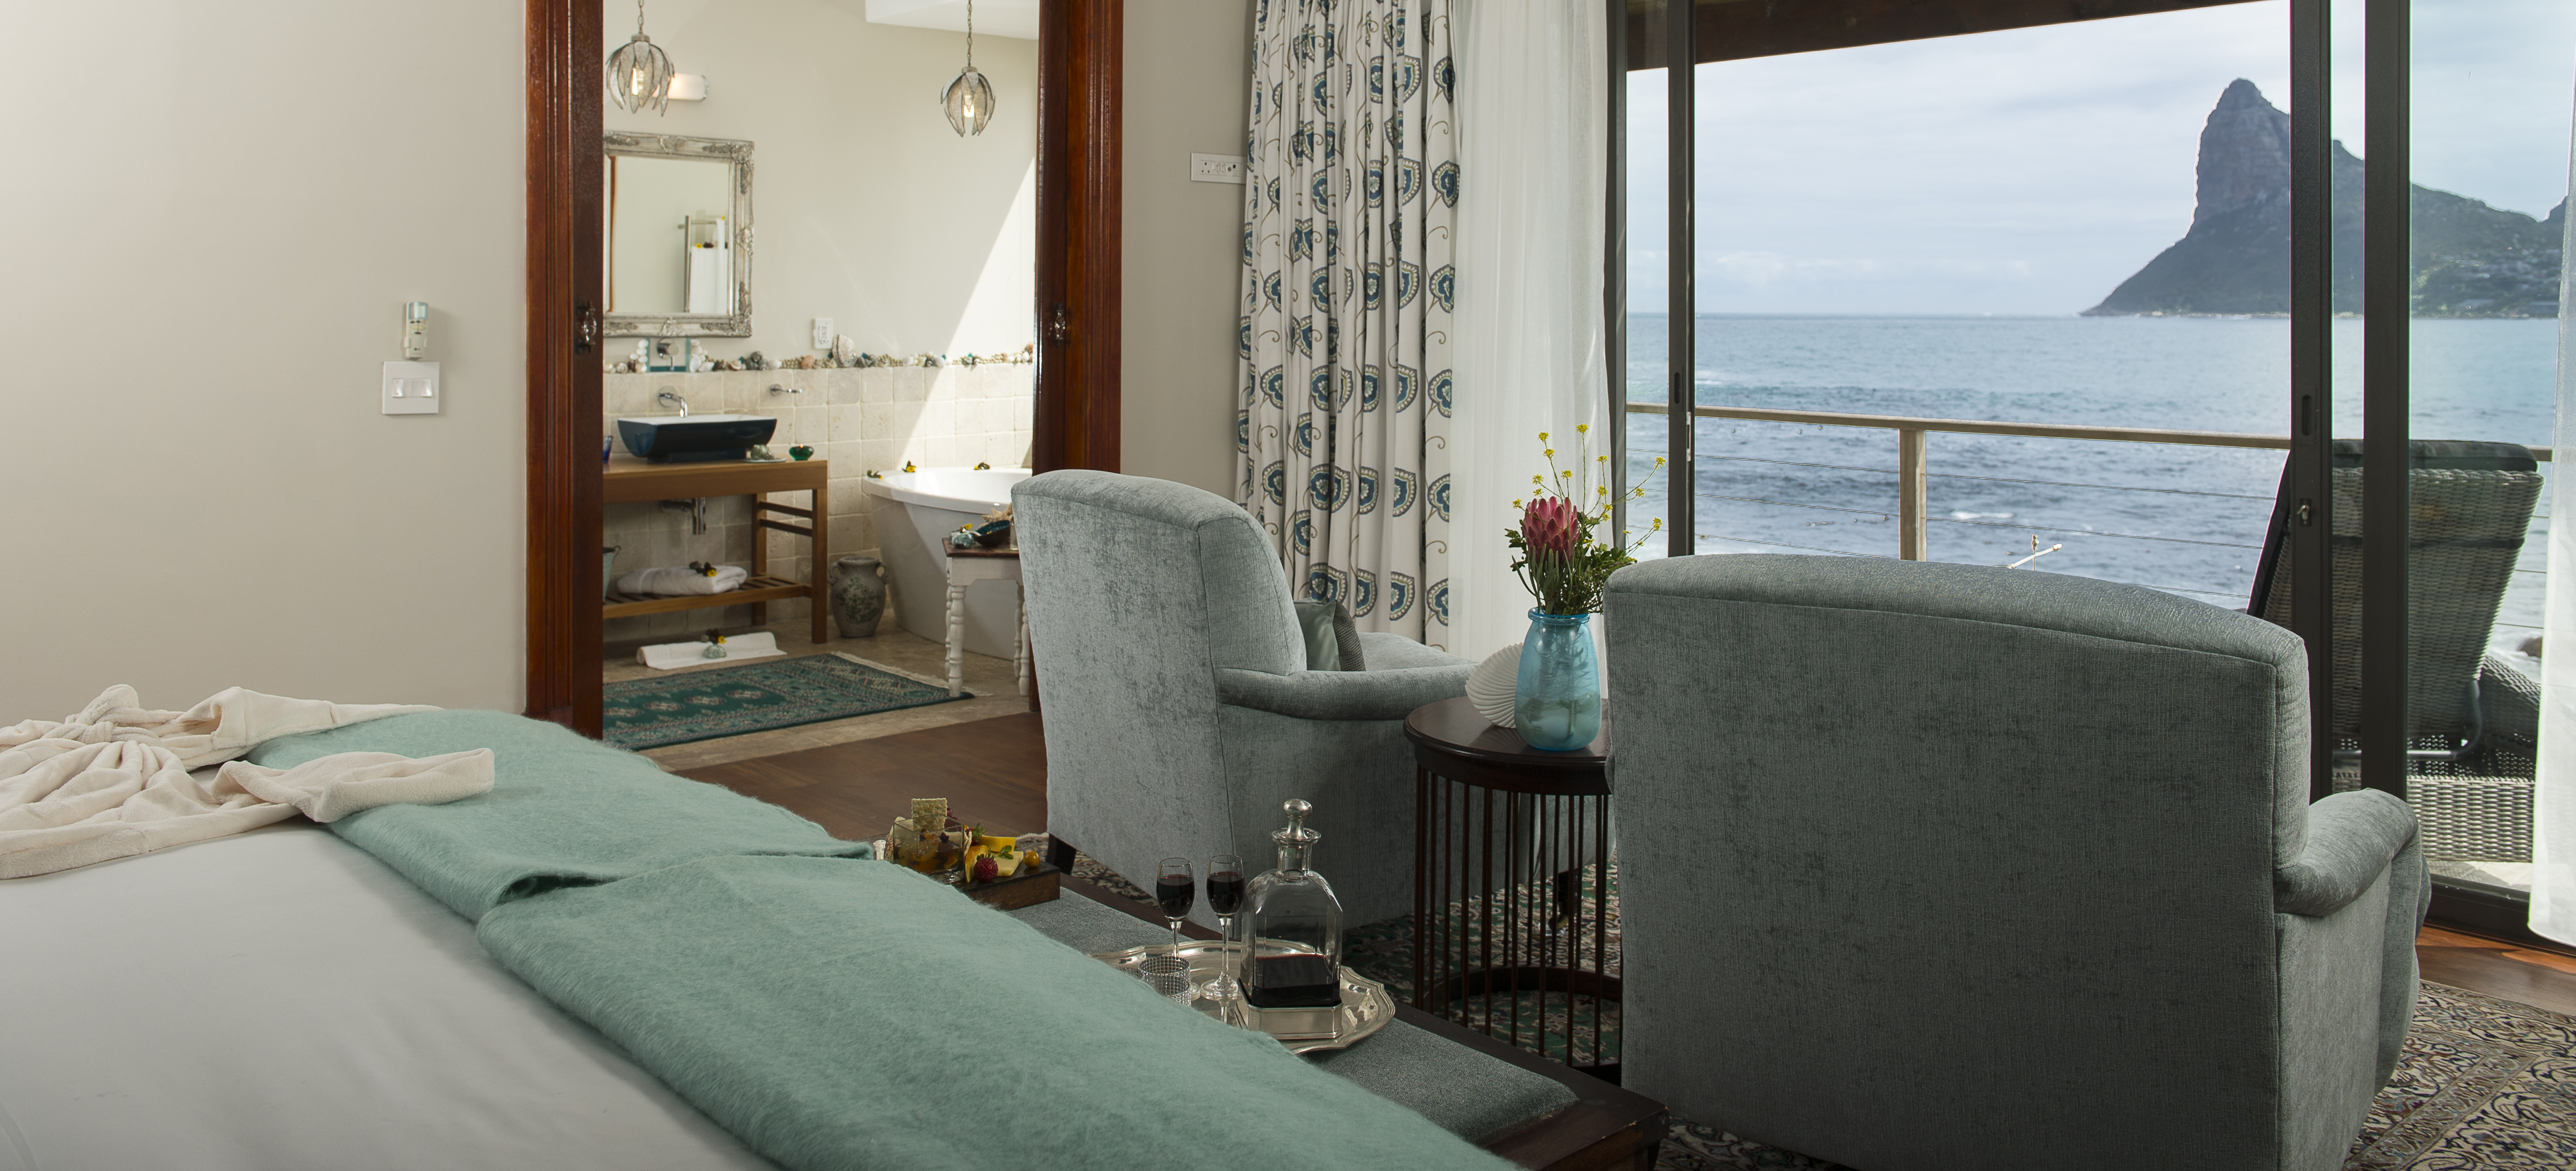 tintswalo-lodge-luxury-suite